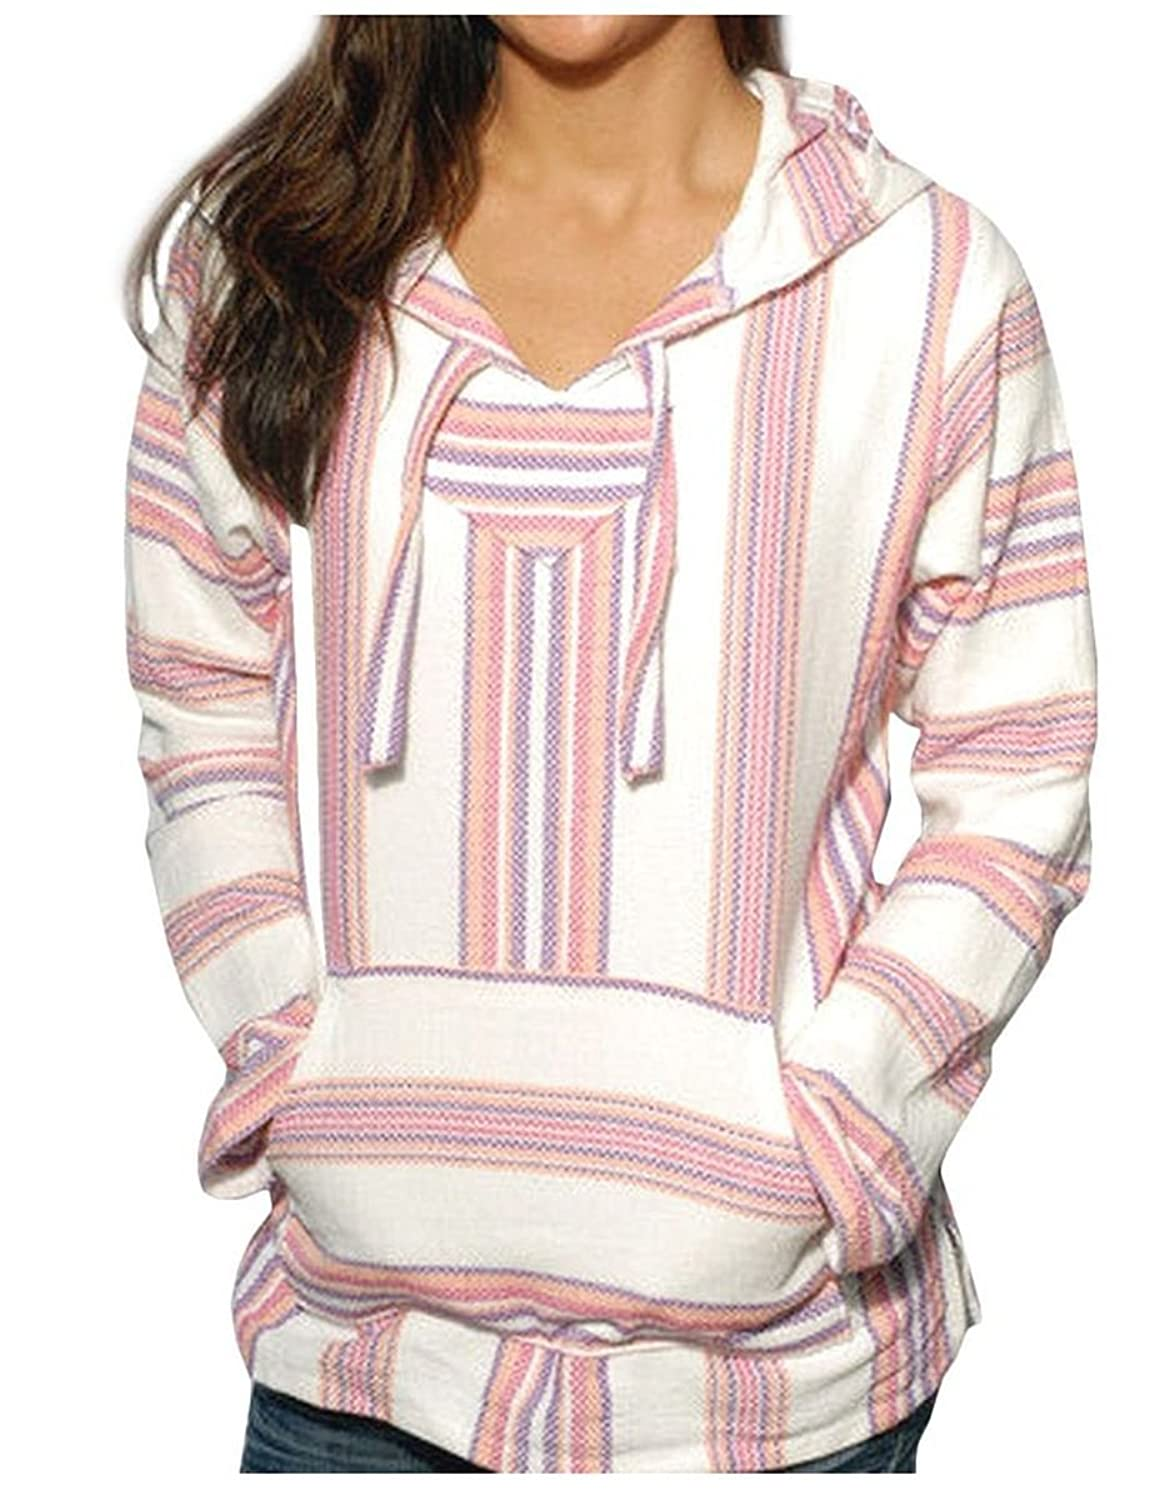 Mexican Womens Baja Hoodie Sweater Jerga Pullover Pink Purple ...